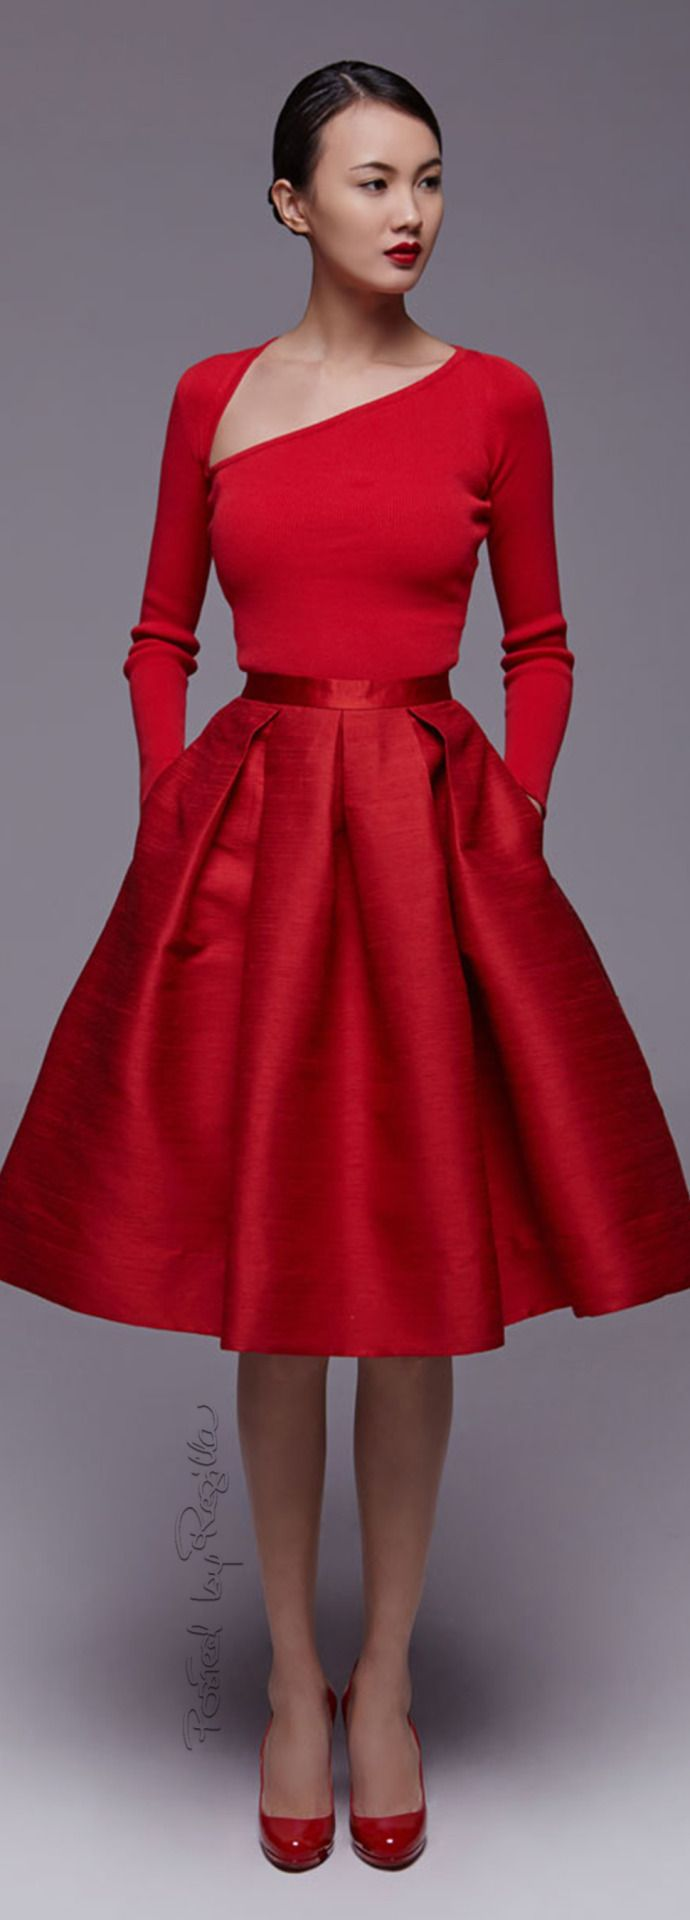 Top 25+ best Red cocktail dress ideas on Pinterest | Red dress ...